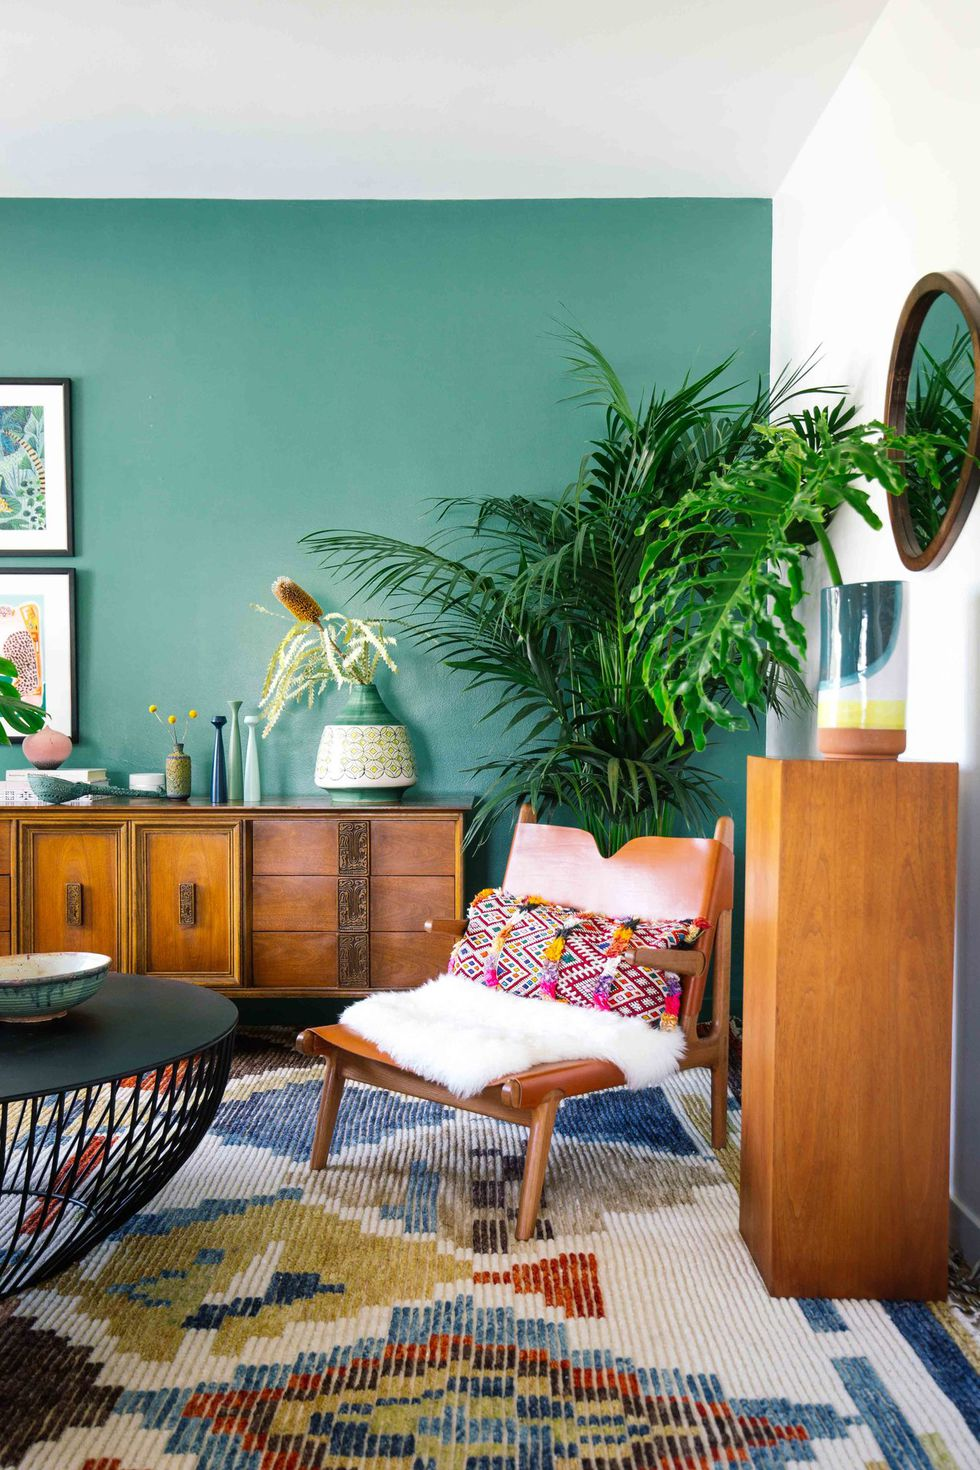 living room decor Upgrade Your Living Room Decor With These Incredible Wall Colors! Upgrade Your Living Room Decor Wih These Incredible Wall Colors